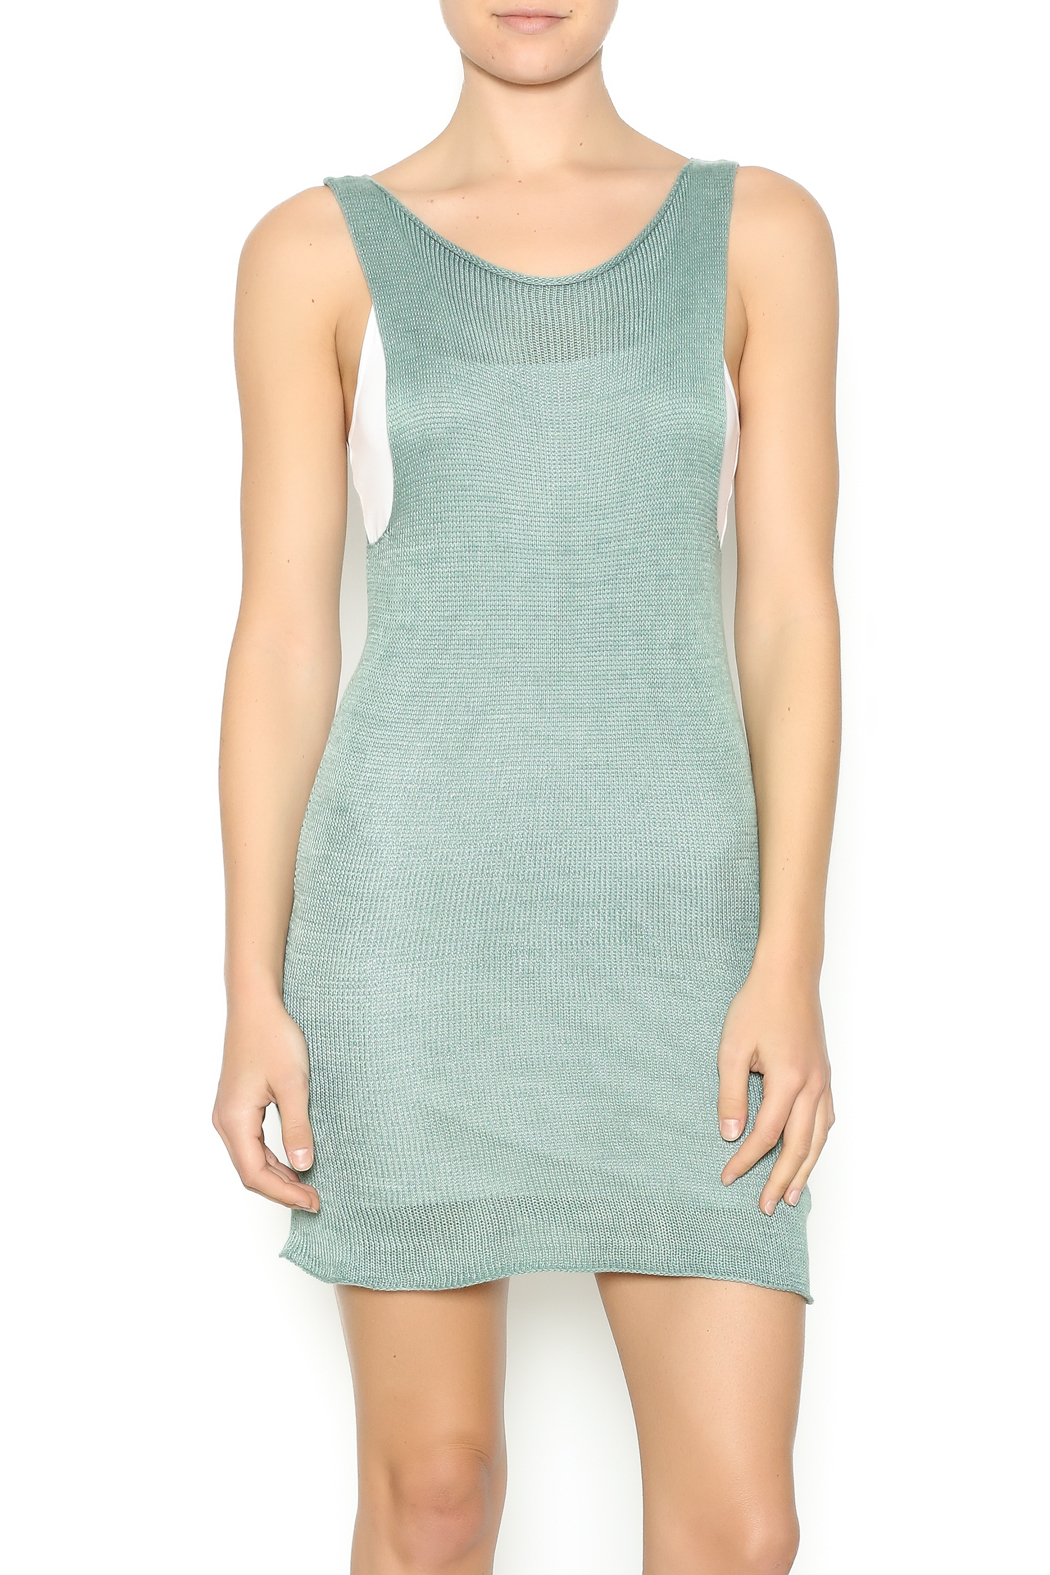 DC KNITS Sleeveless Bamboo Dress - Front Cropped Image